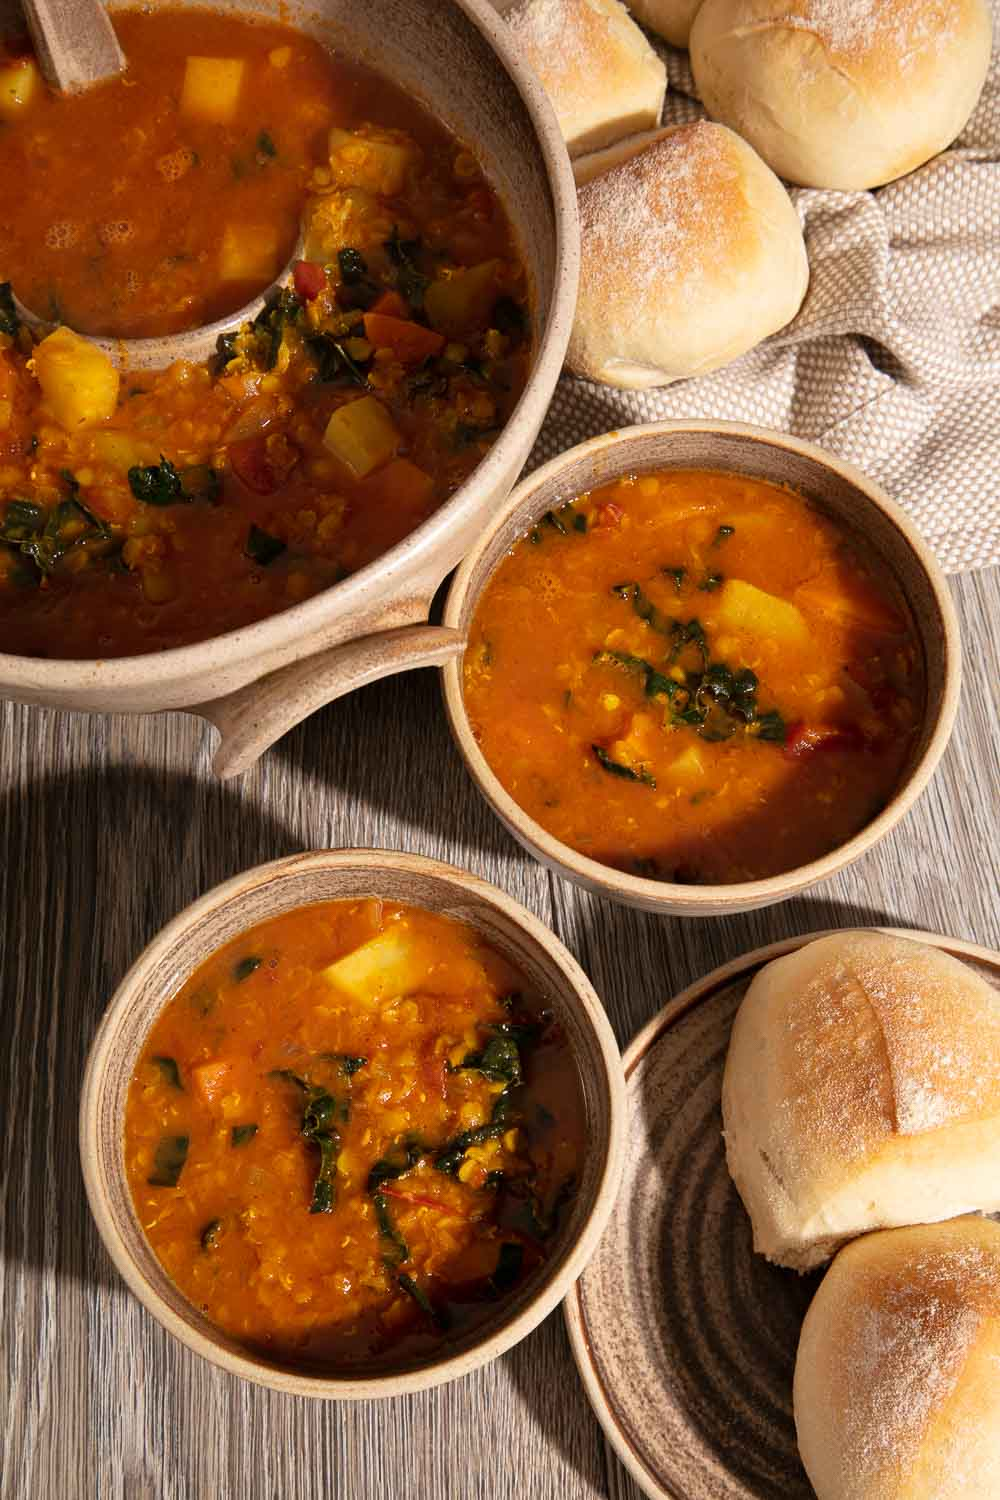 Two bowls and a tureen of Lentil and Winter Vegetable Soup with soft bread rolls.